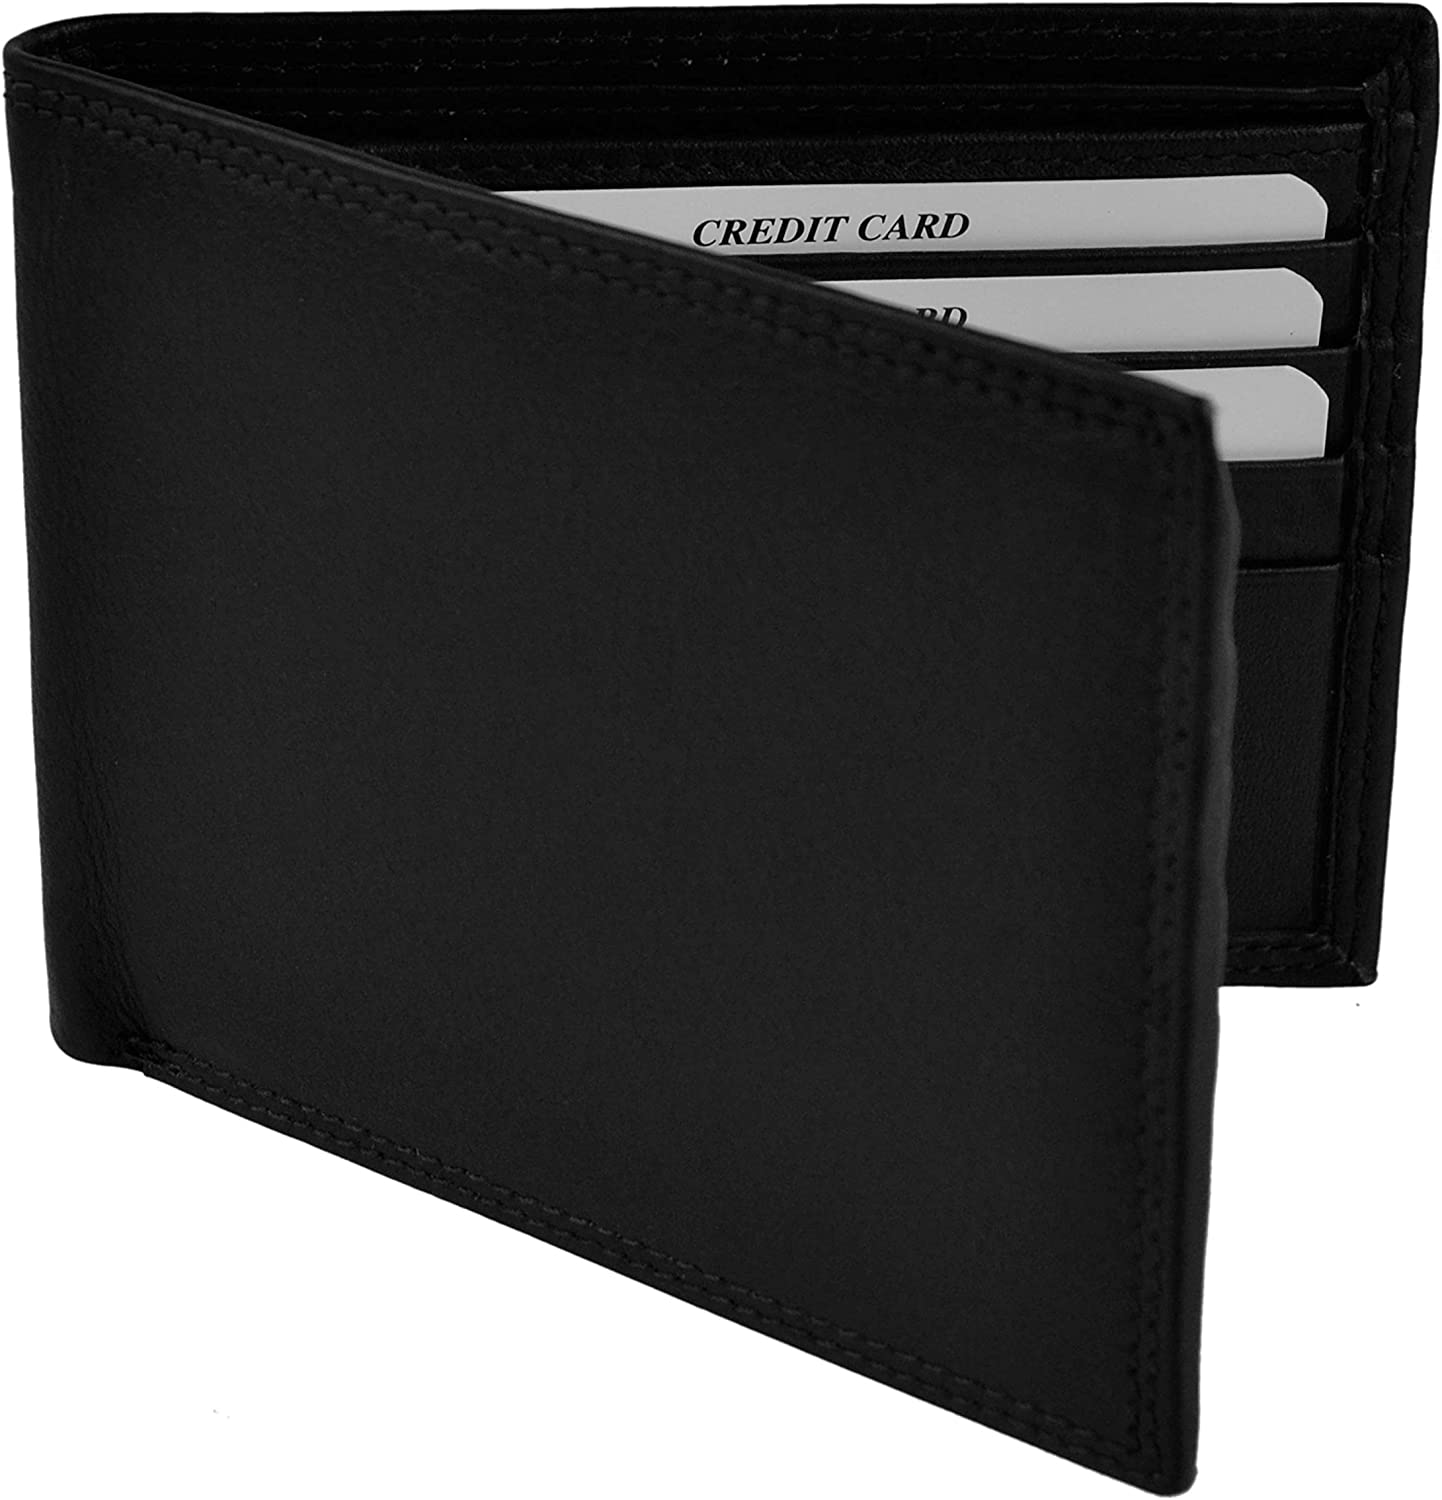 NEW Mens Quality Soft Bi-Fold LEATHER Wallet by Oakridge; Nevada Collection Gift